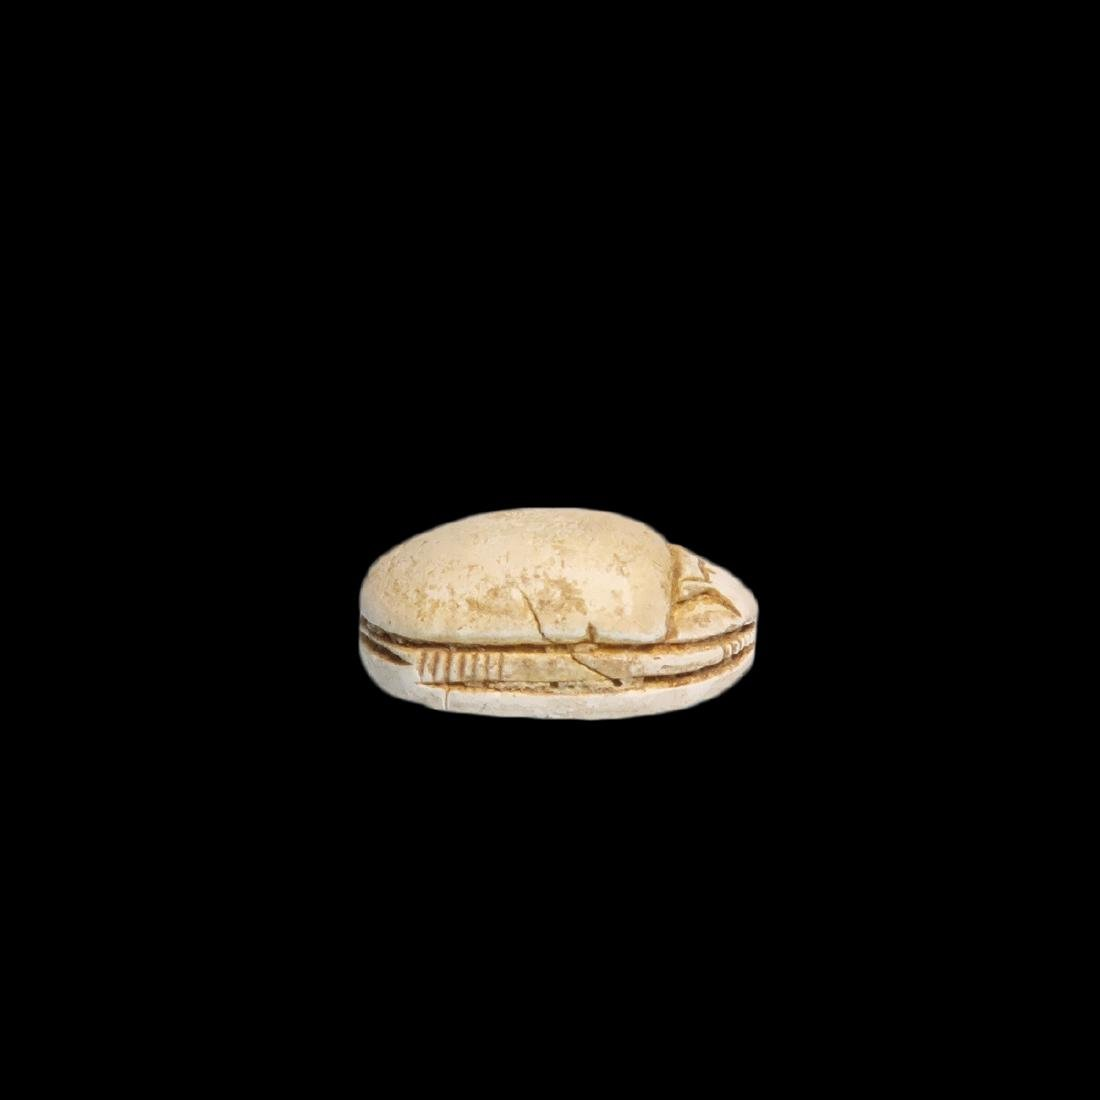 Egyptian Steatite Scarab with Horus and Eternity - 5